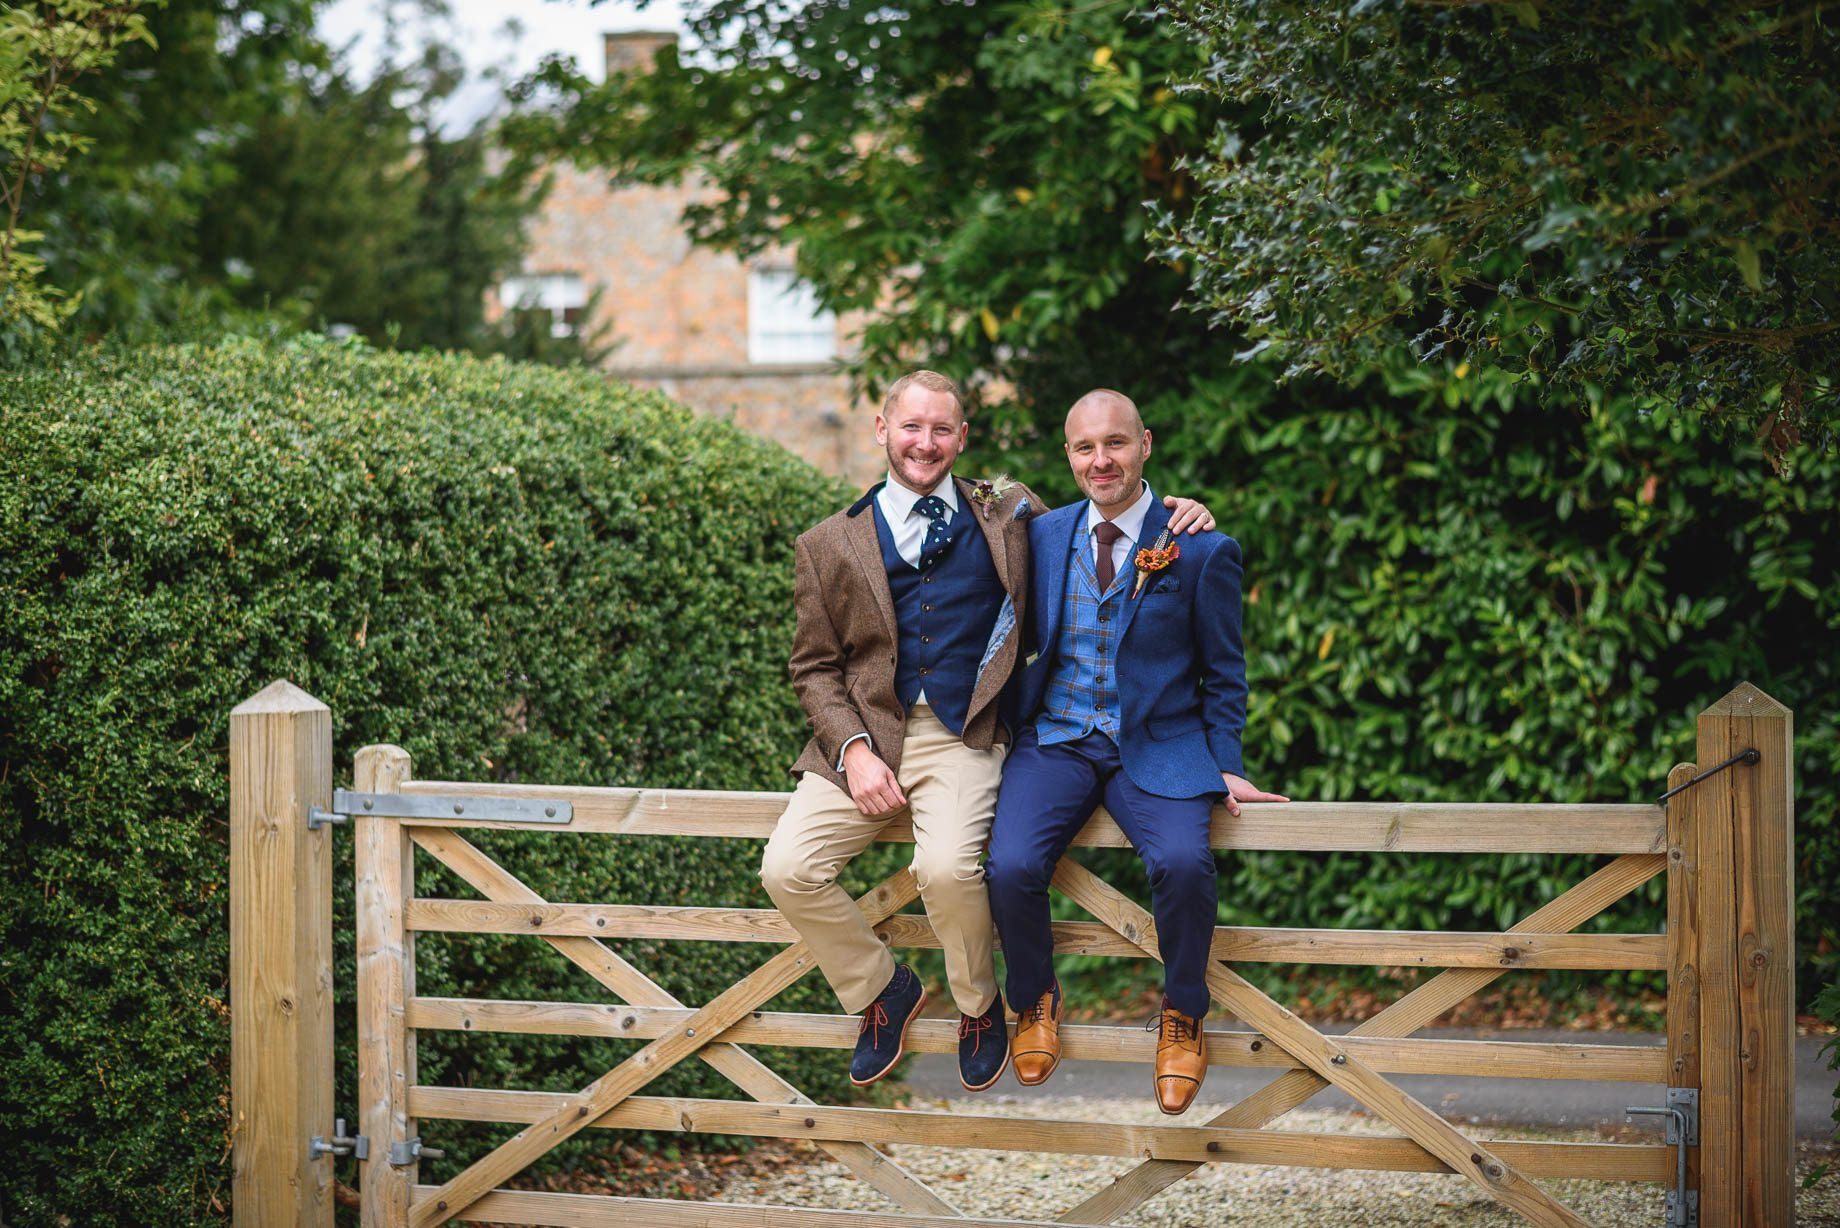 gay-wedding-photography-at-wasing-park-guy-collier-photography-ben-and-stephen-108-of-202